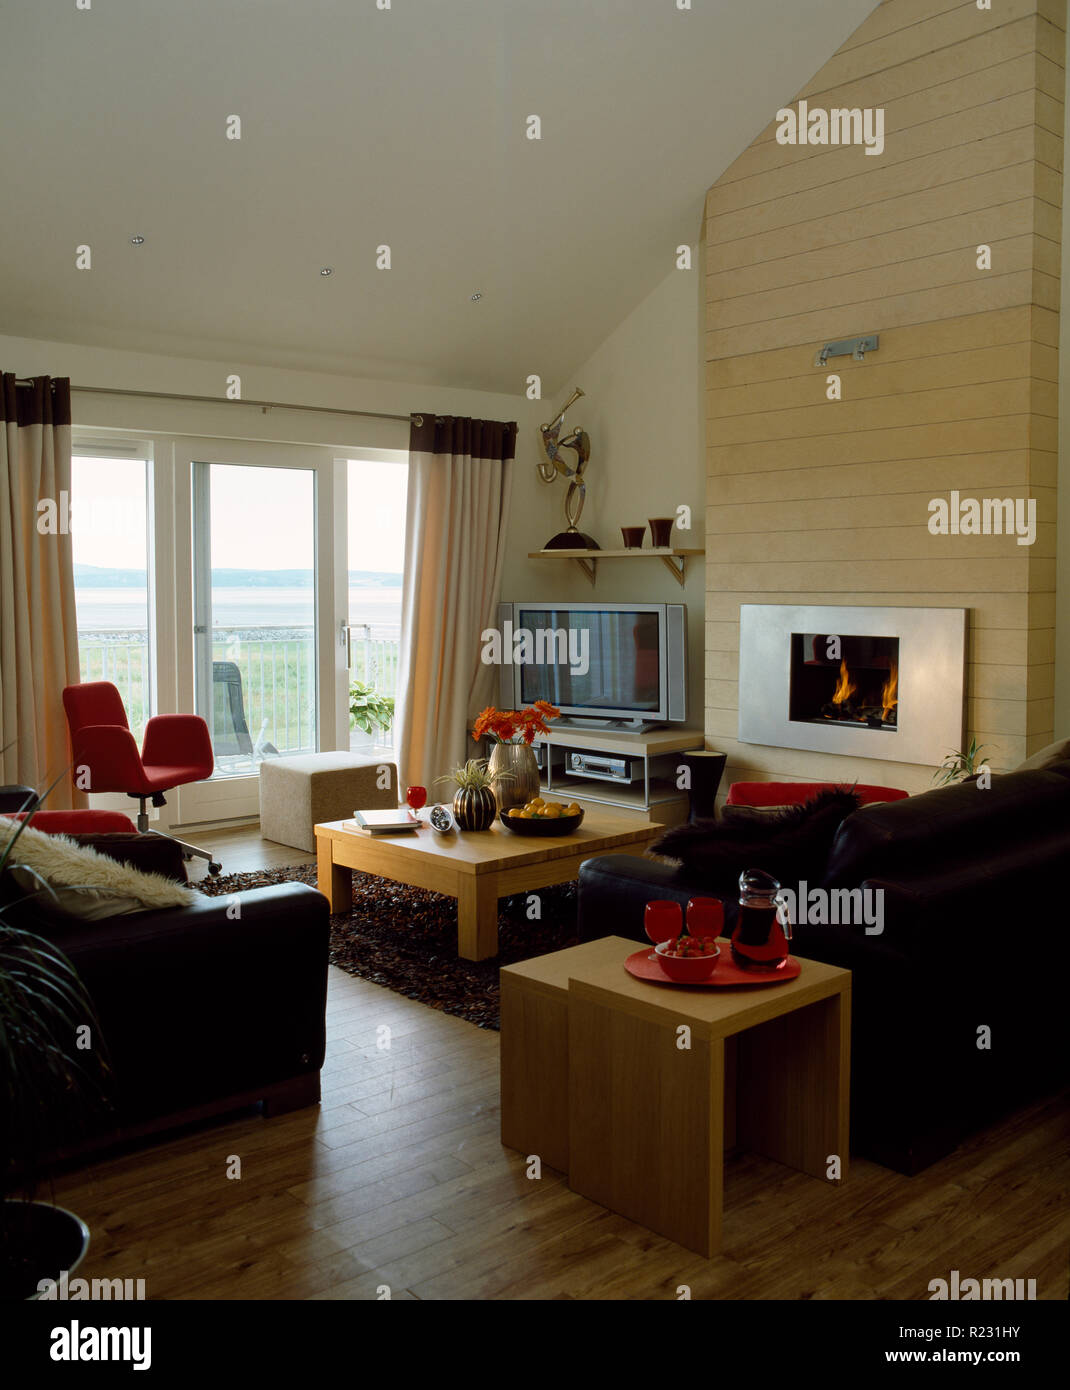 Merveilleux Wooden Flooring And Leather Sofas In Modern Coastal Living Room